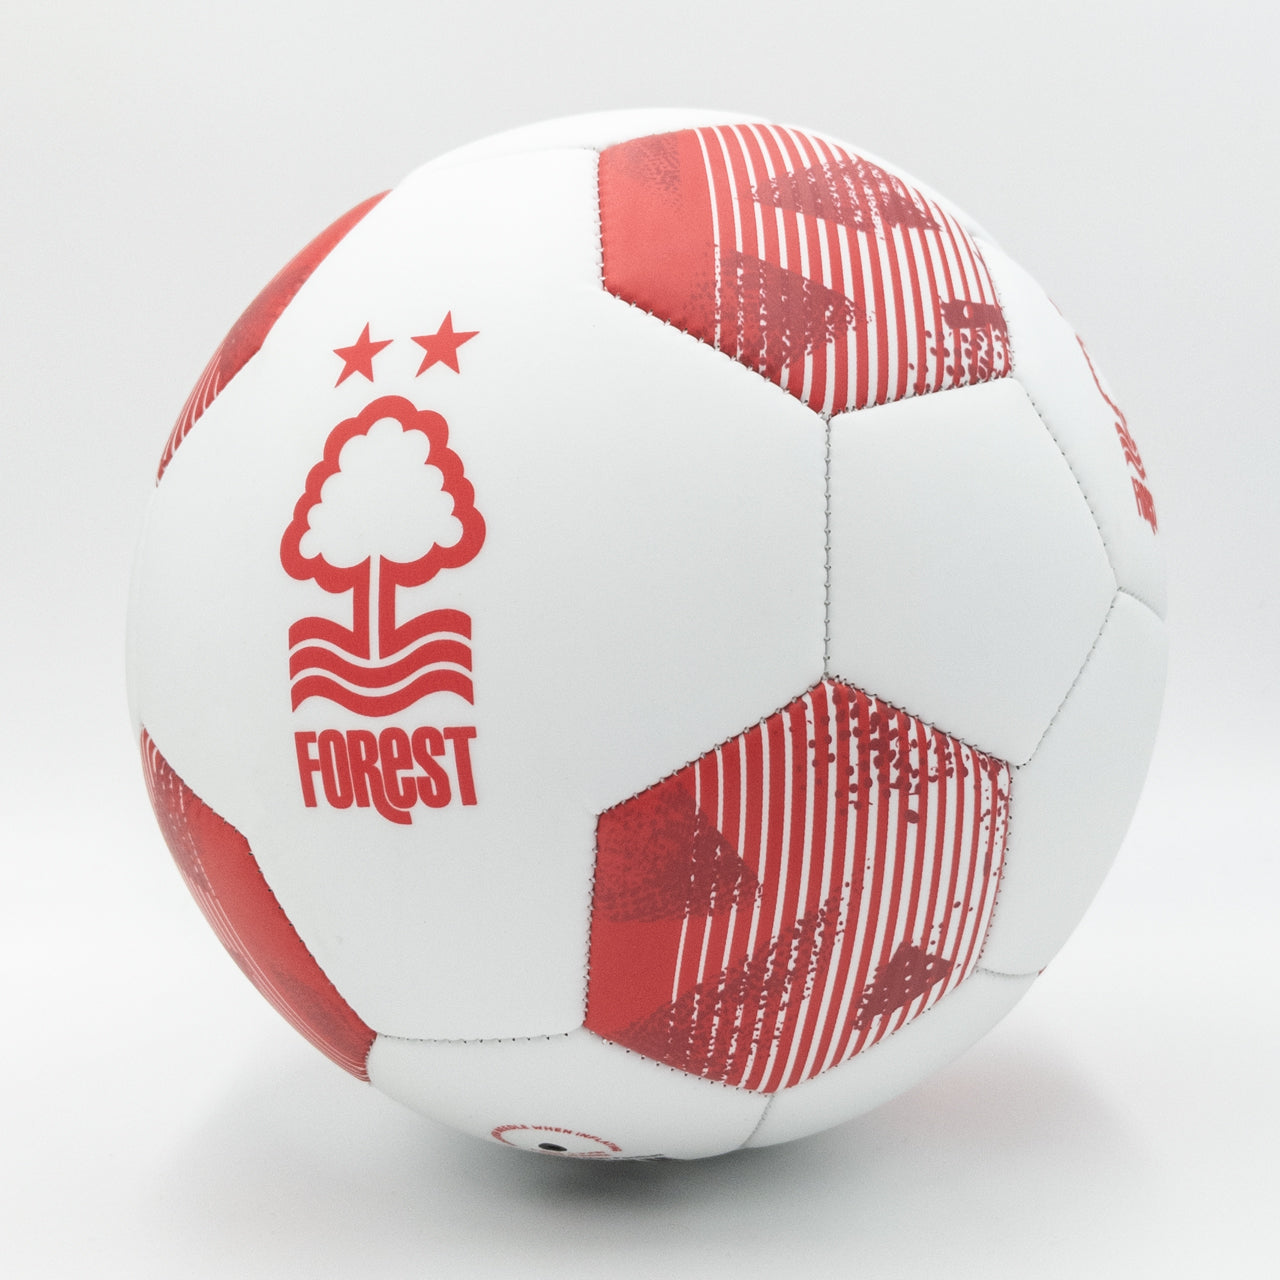 NFFC White Matt Football - Size 5